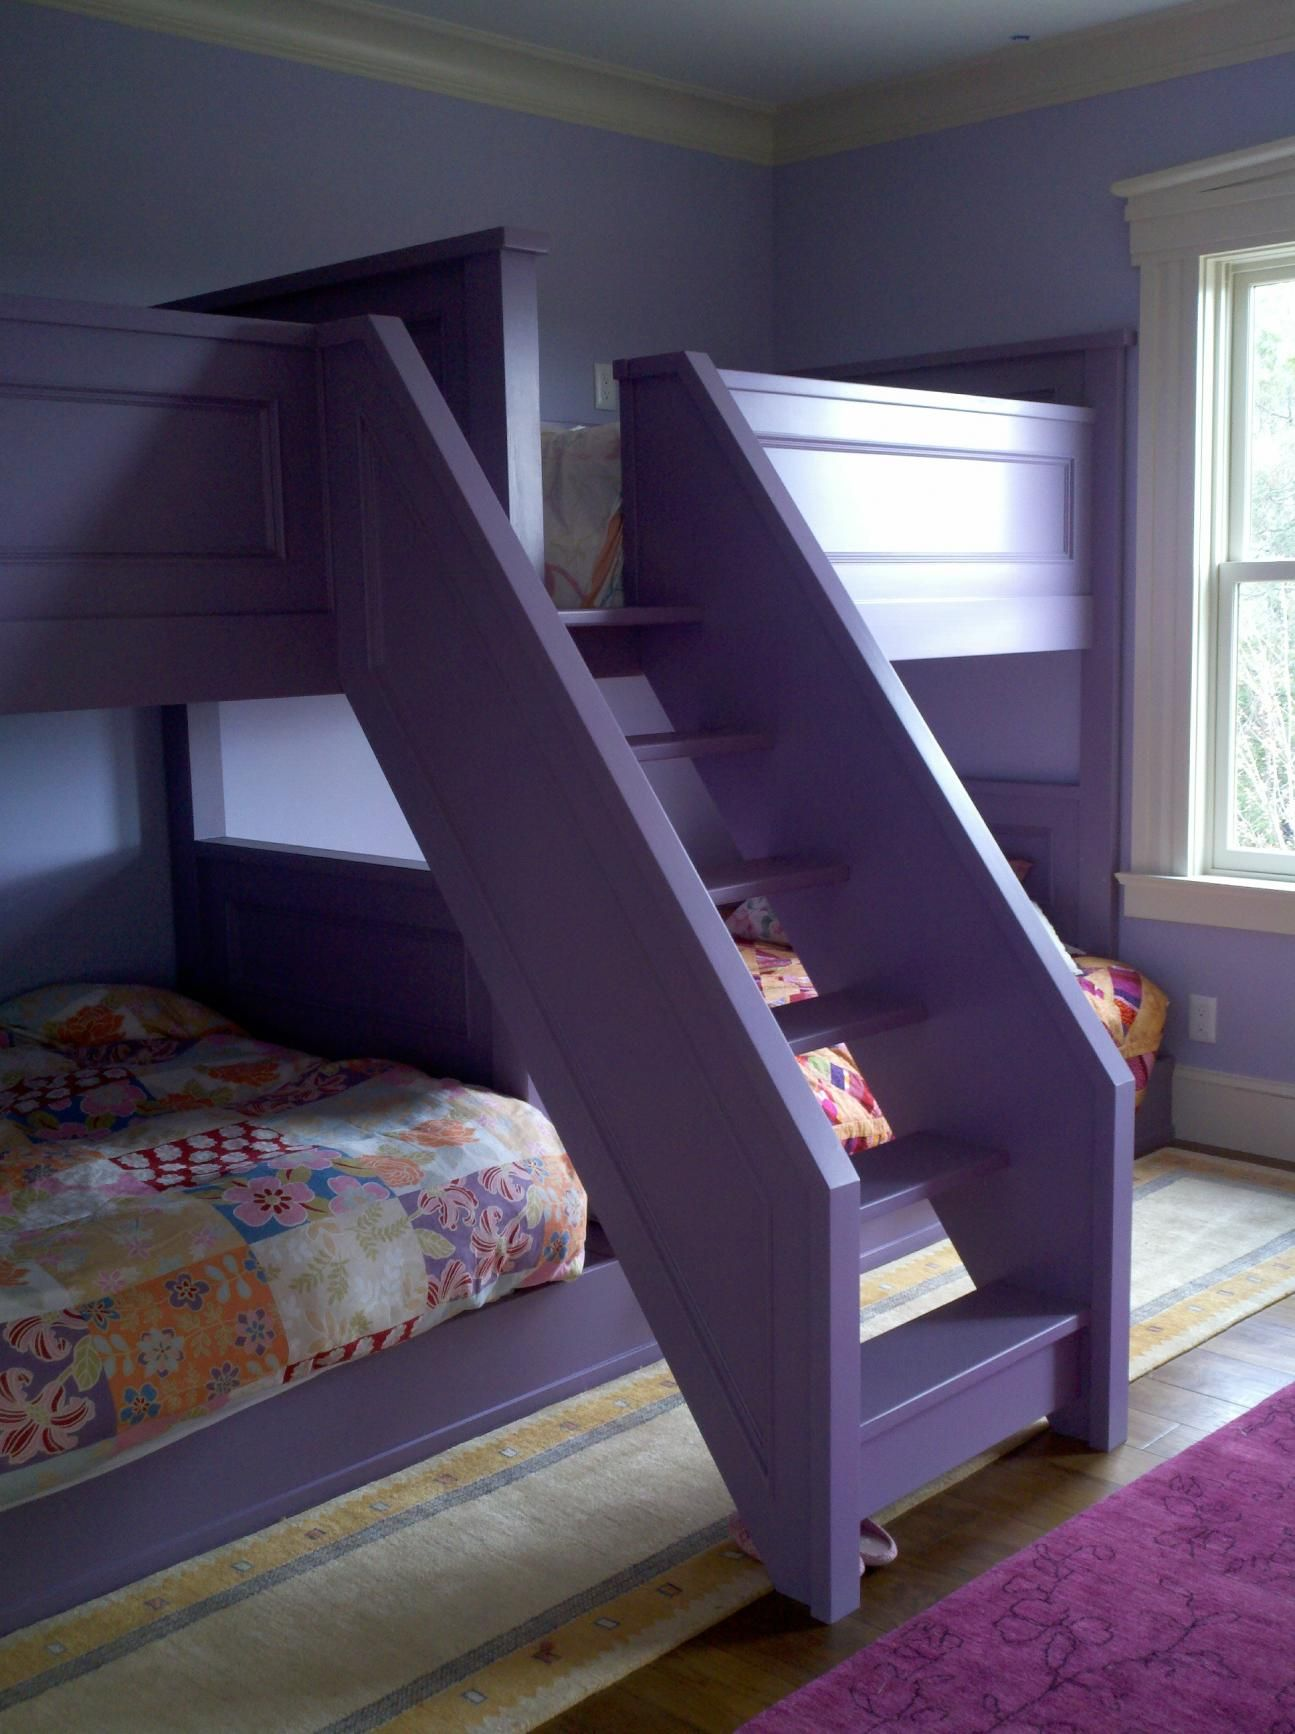 Best Pair Of Quad Bunk Beds Home Stylin Pinterest Bunk 640 x 480